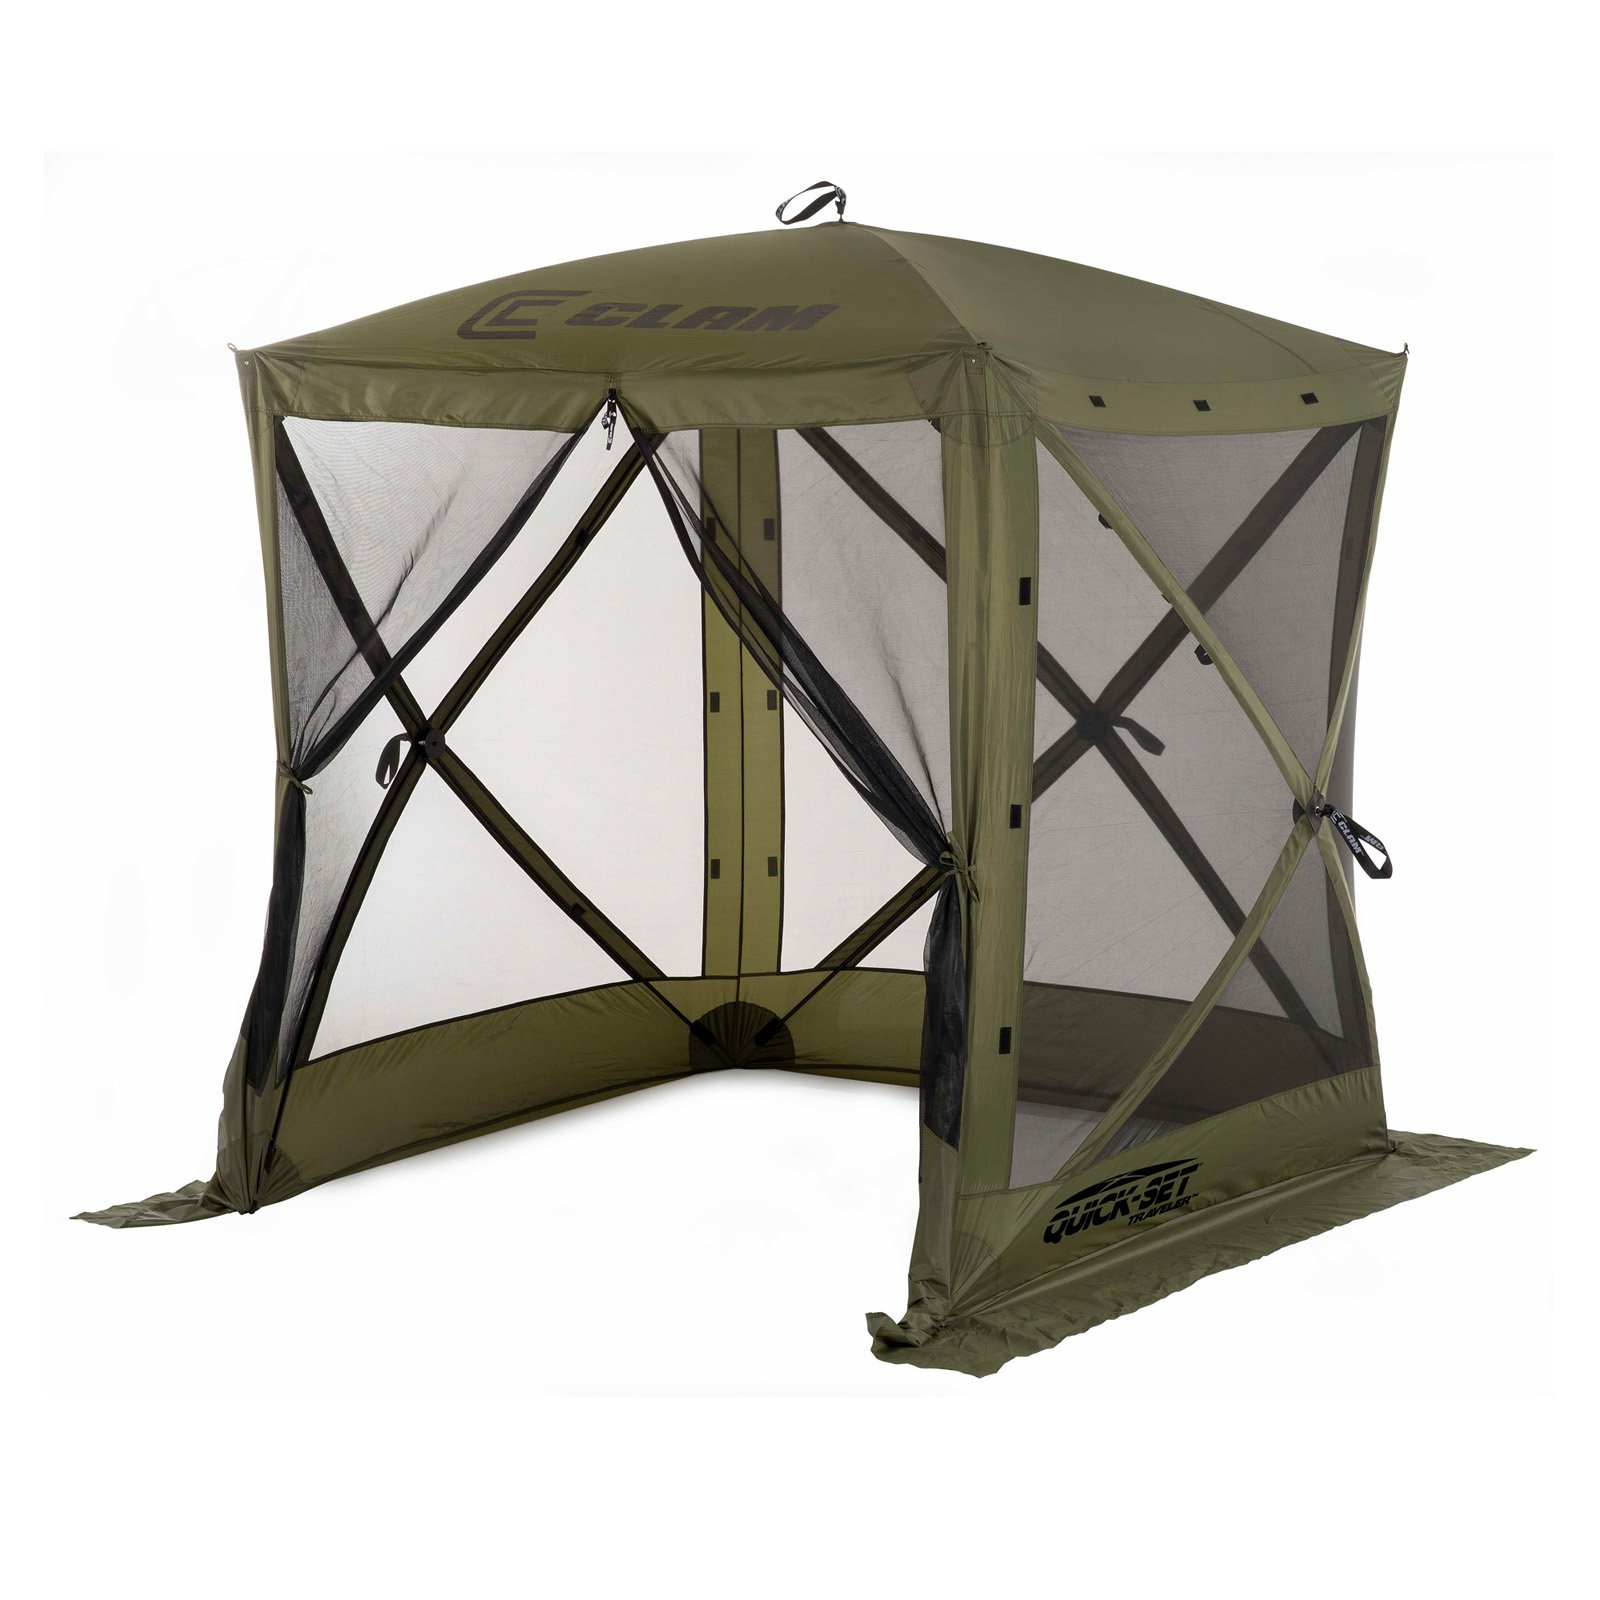 Clam 6 x 6 ft. Quick-Set Traveler Canopy Shelter by Quick-Set